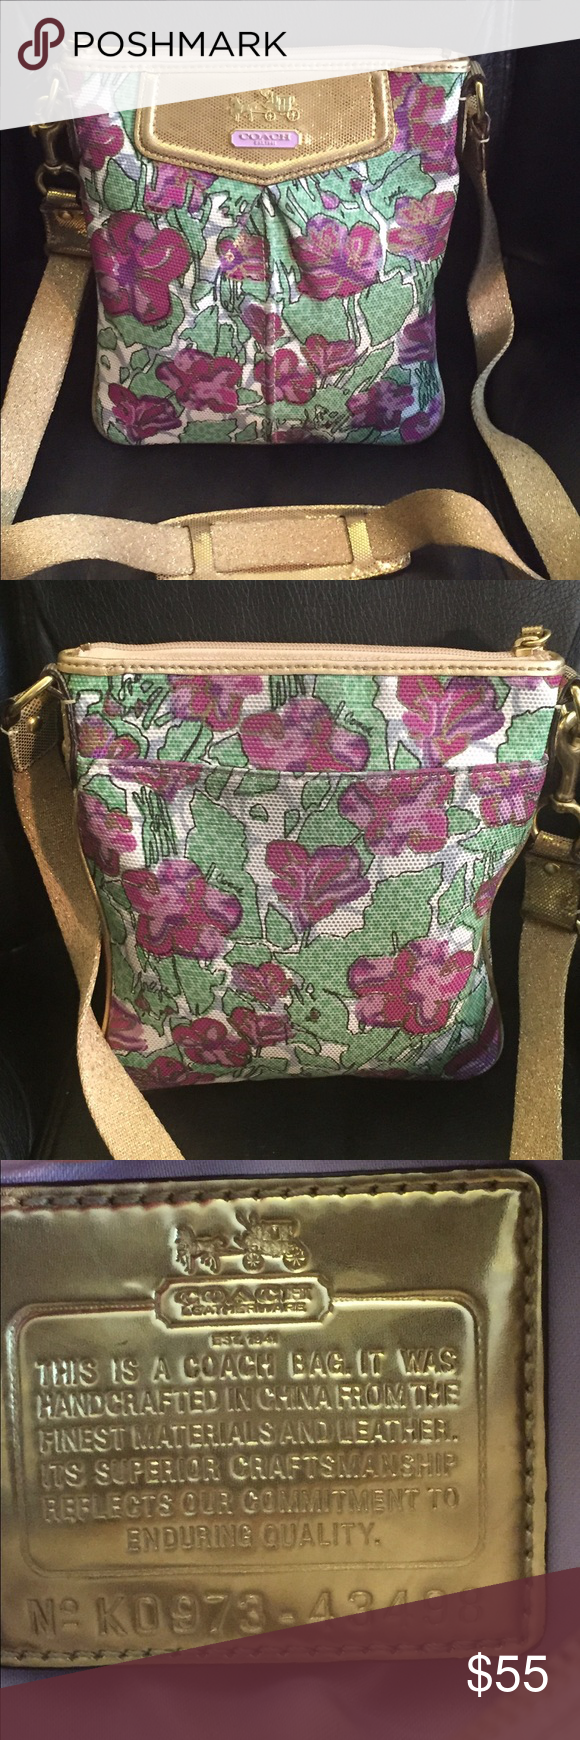 """Coach Poppy Small Crossbody Pink Green Gold Coach Poppy Small Canvas Crossbody Shoulder Bag Pink/Green/Gold Top Zip Closure Back Slip Pocket. Lavender Lining, #43498. L 7,75"""", D 1"""", H 8.5"""" Strap Drop 23"""". Excellent Preowned Condition! Coach Bags Crossbody Bags"""